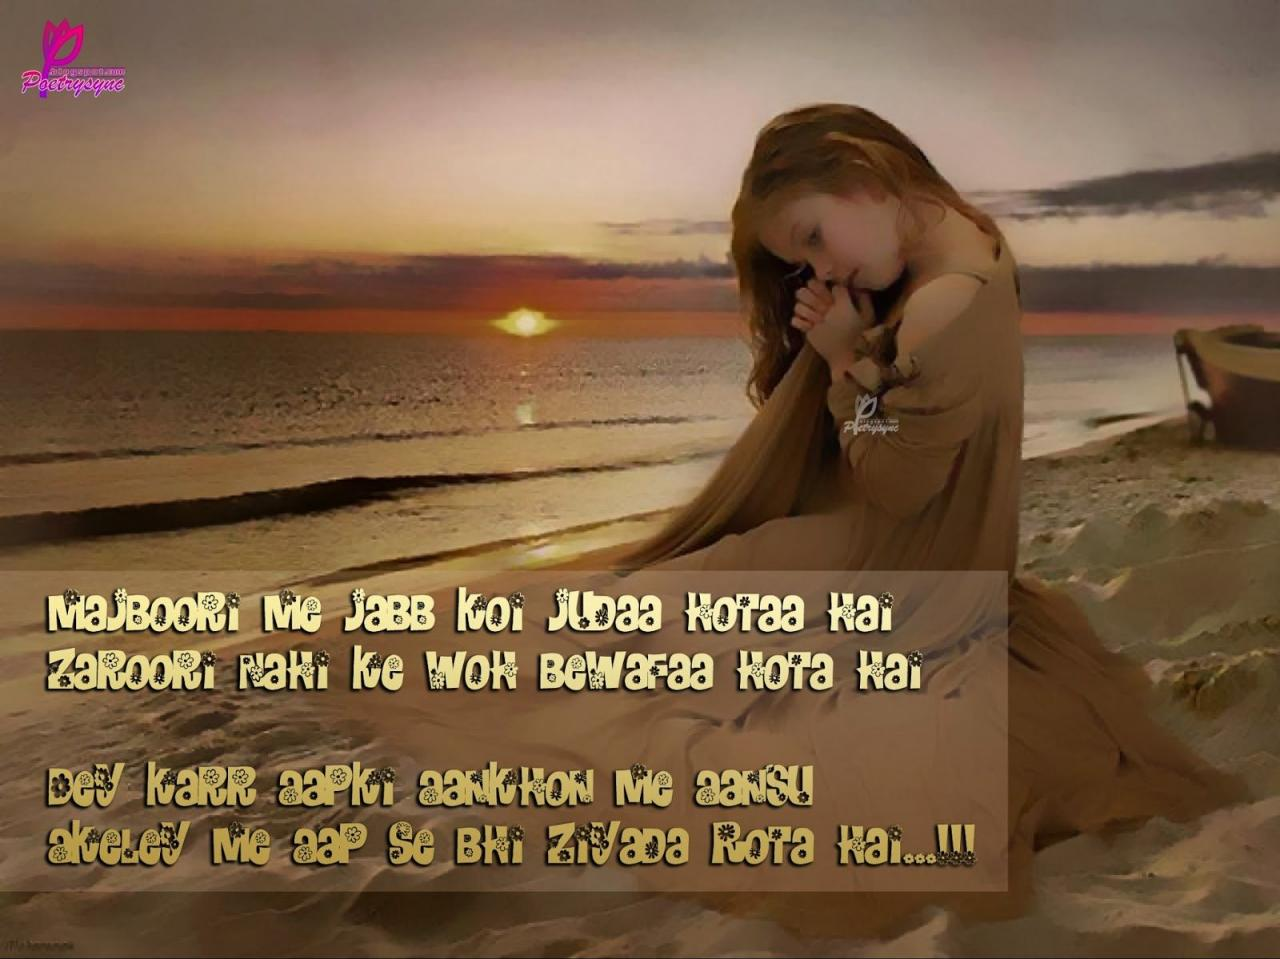 Sad Life Quotes In Hindi With Images Sad Quotes Tumblr About Love That Make You Cry